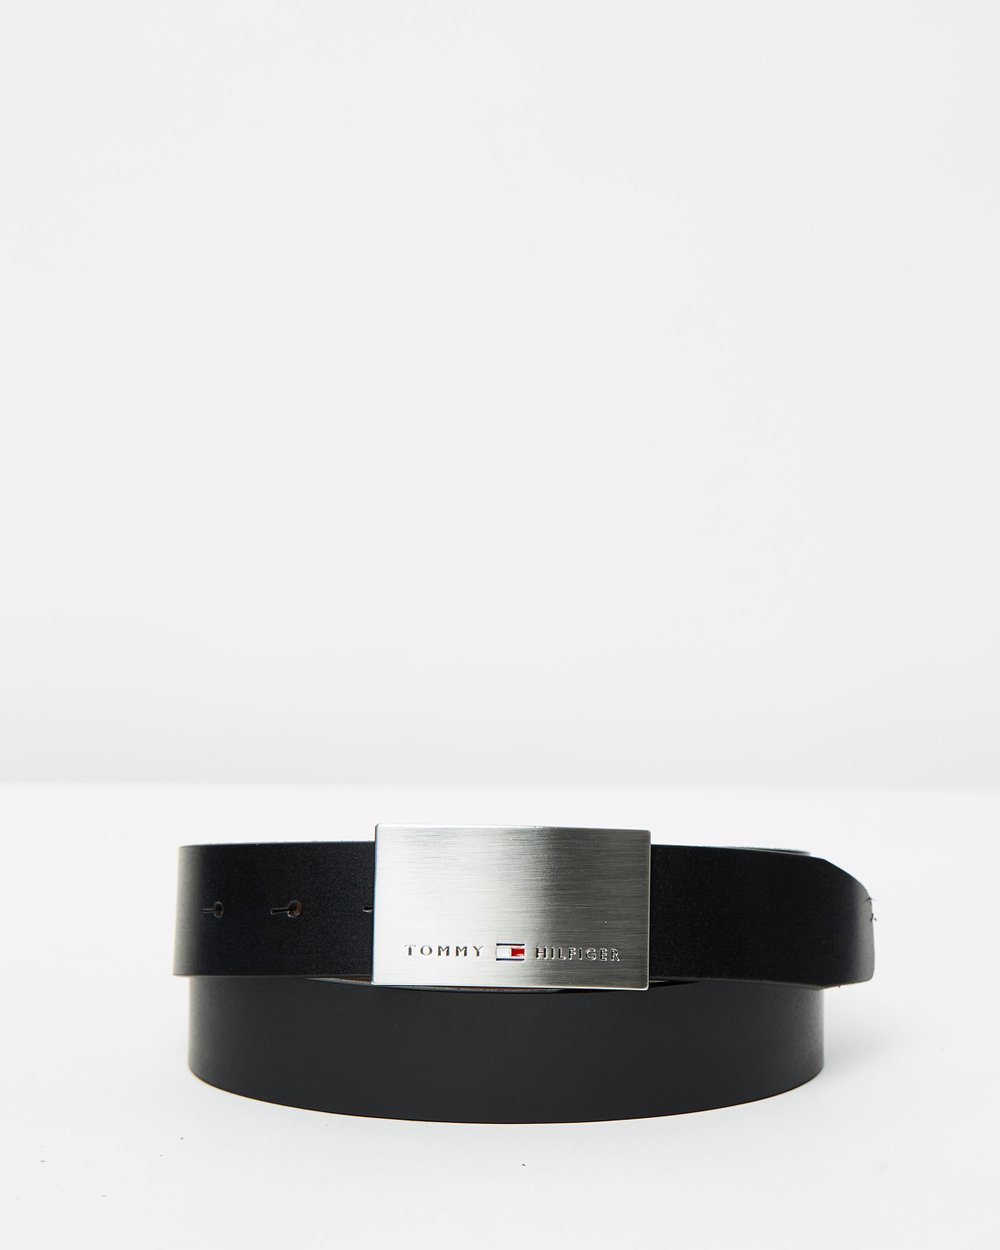 c9fc02679e74 Reversible Leather Belt Gift Set by Tommy Hilfiger Online